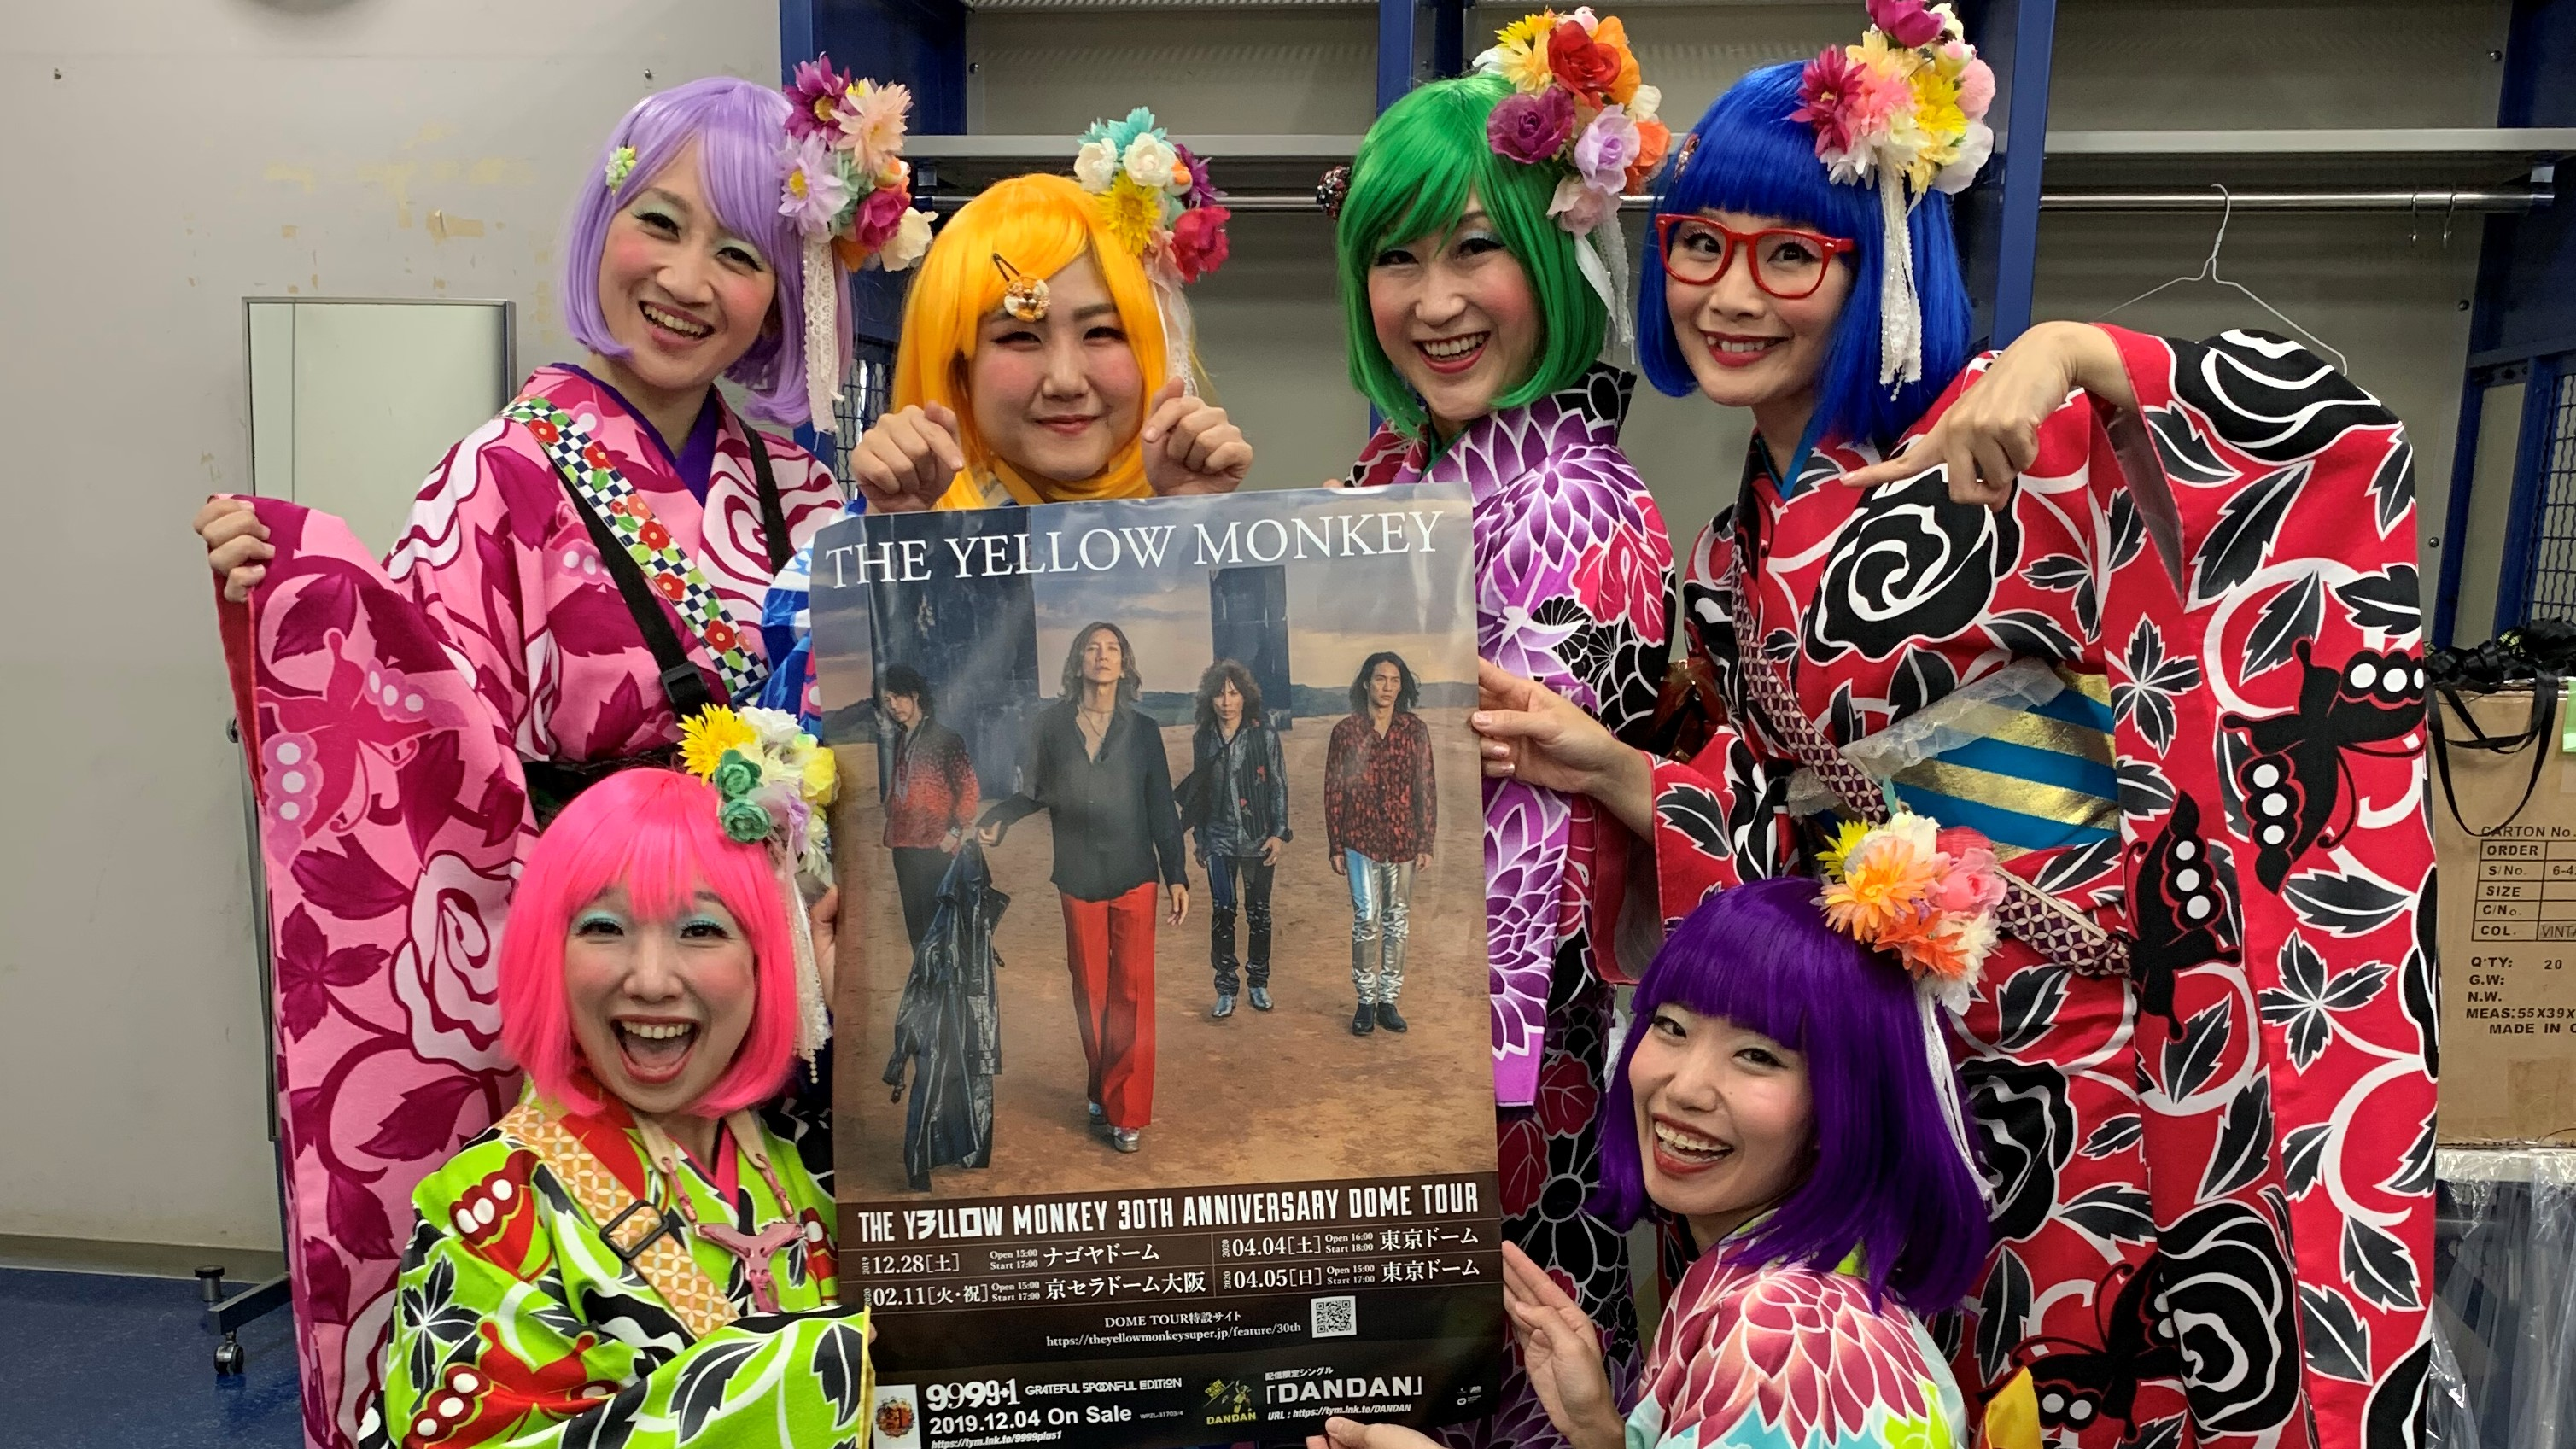 (Japanese) 2020/09/05動画配信決定!「THE YELLOW MONKEY 30th Anniversary DOME TOUR」ナゴヤドーム